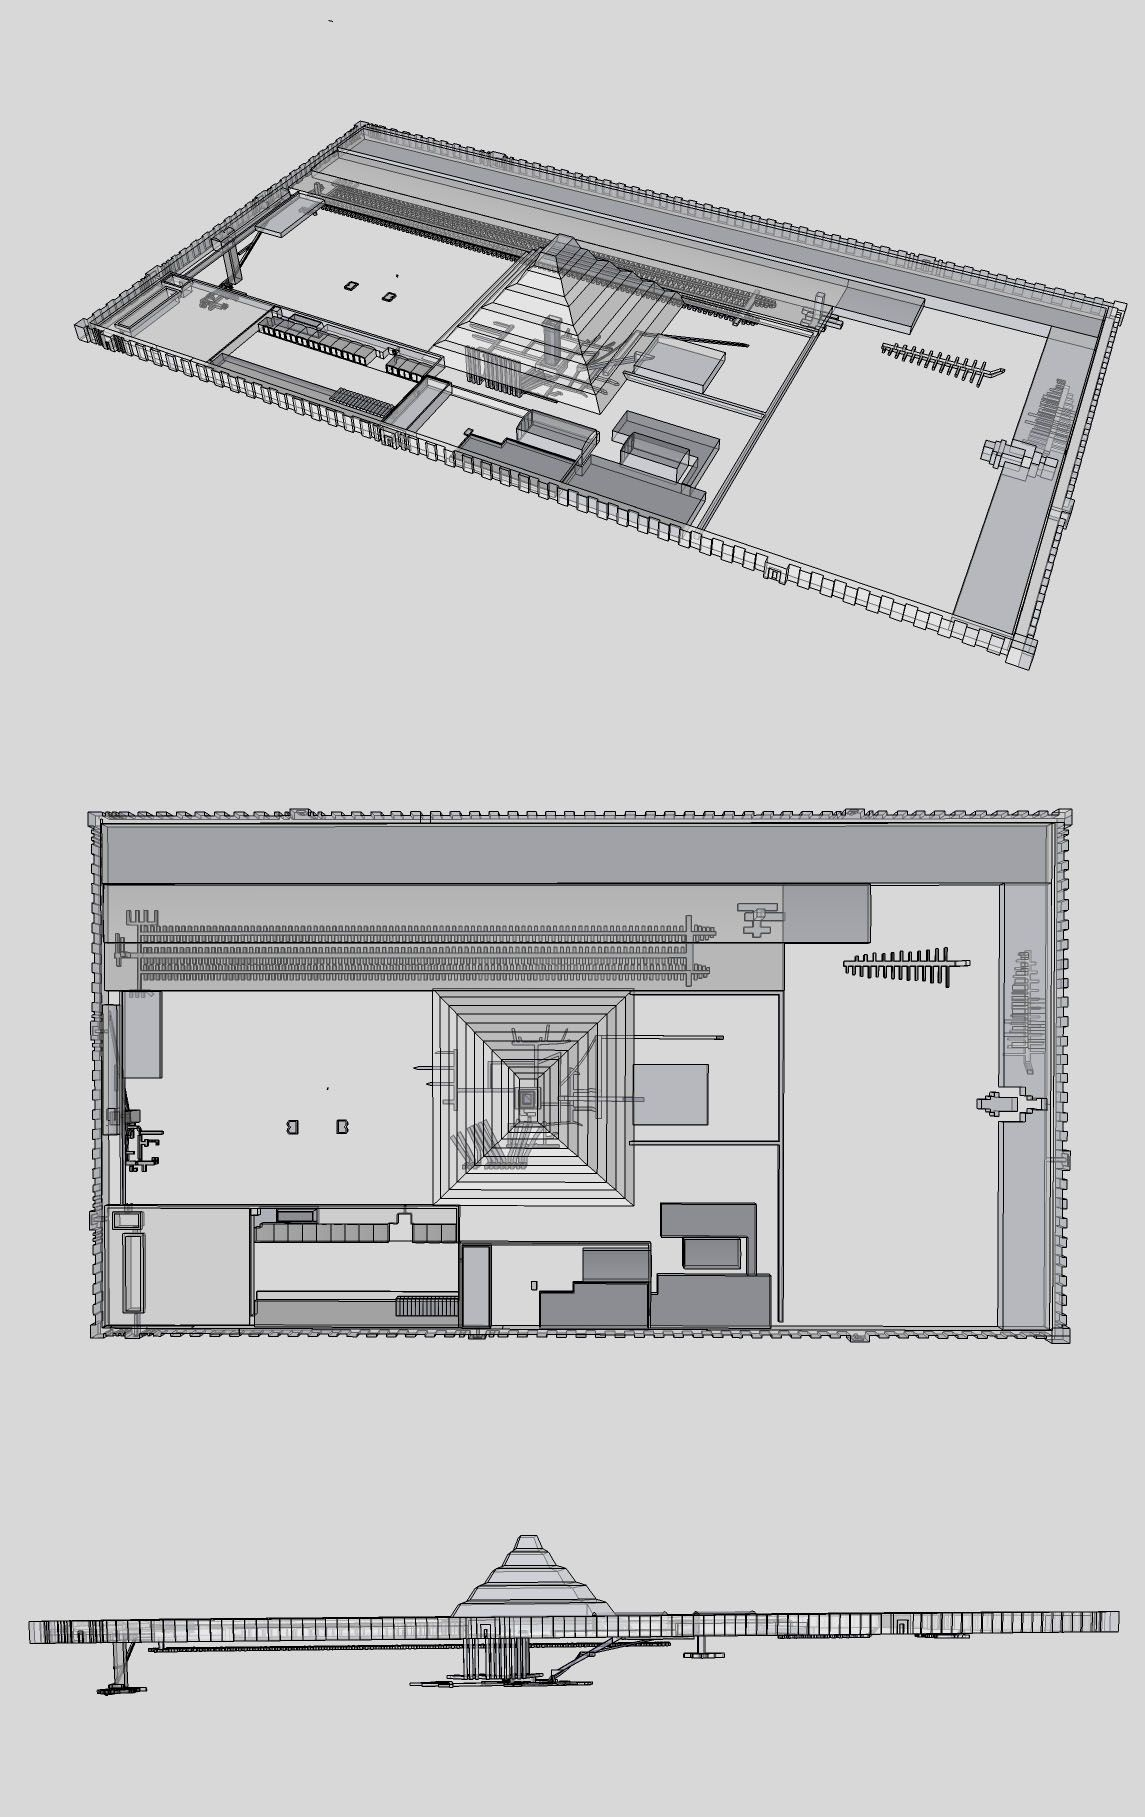 Perspective View Plan And Elevation Images Djoser S